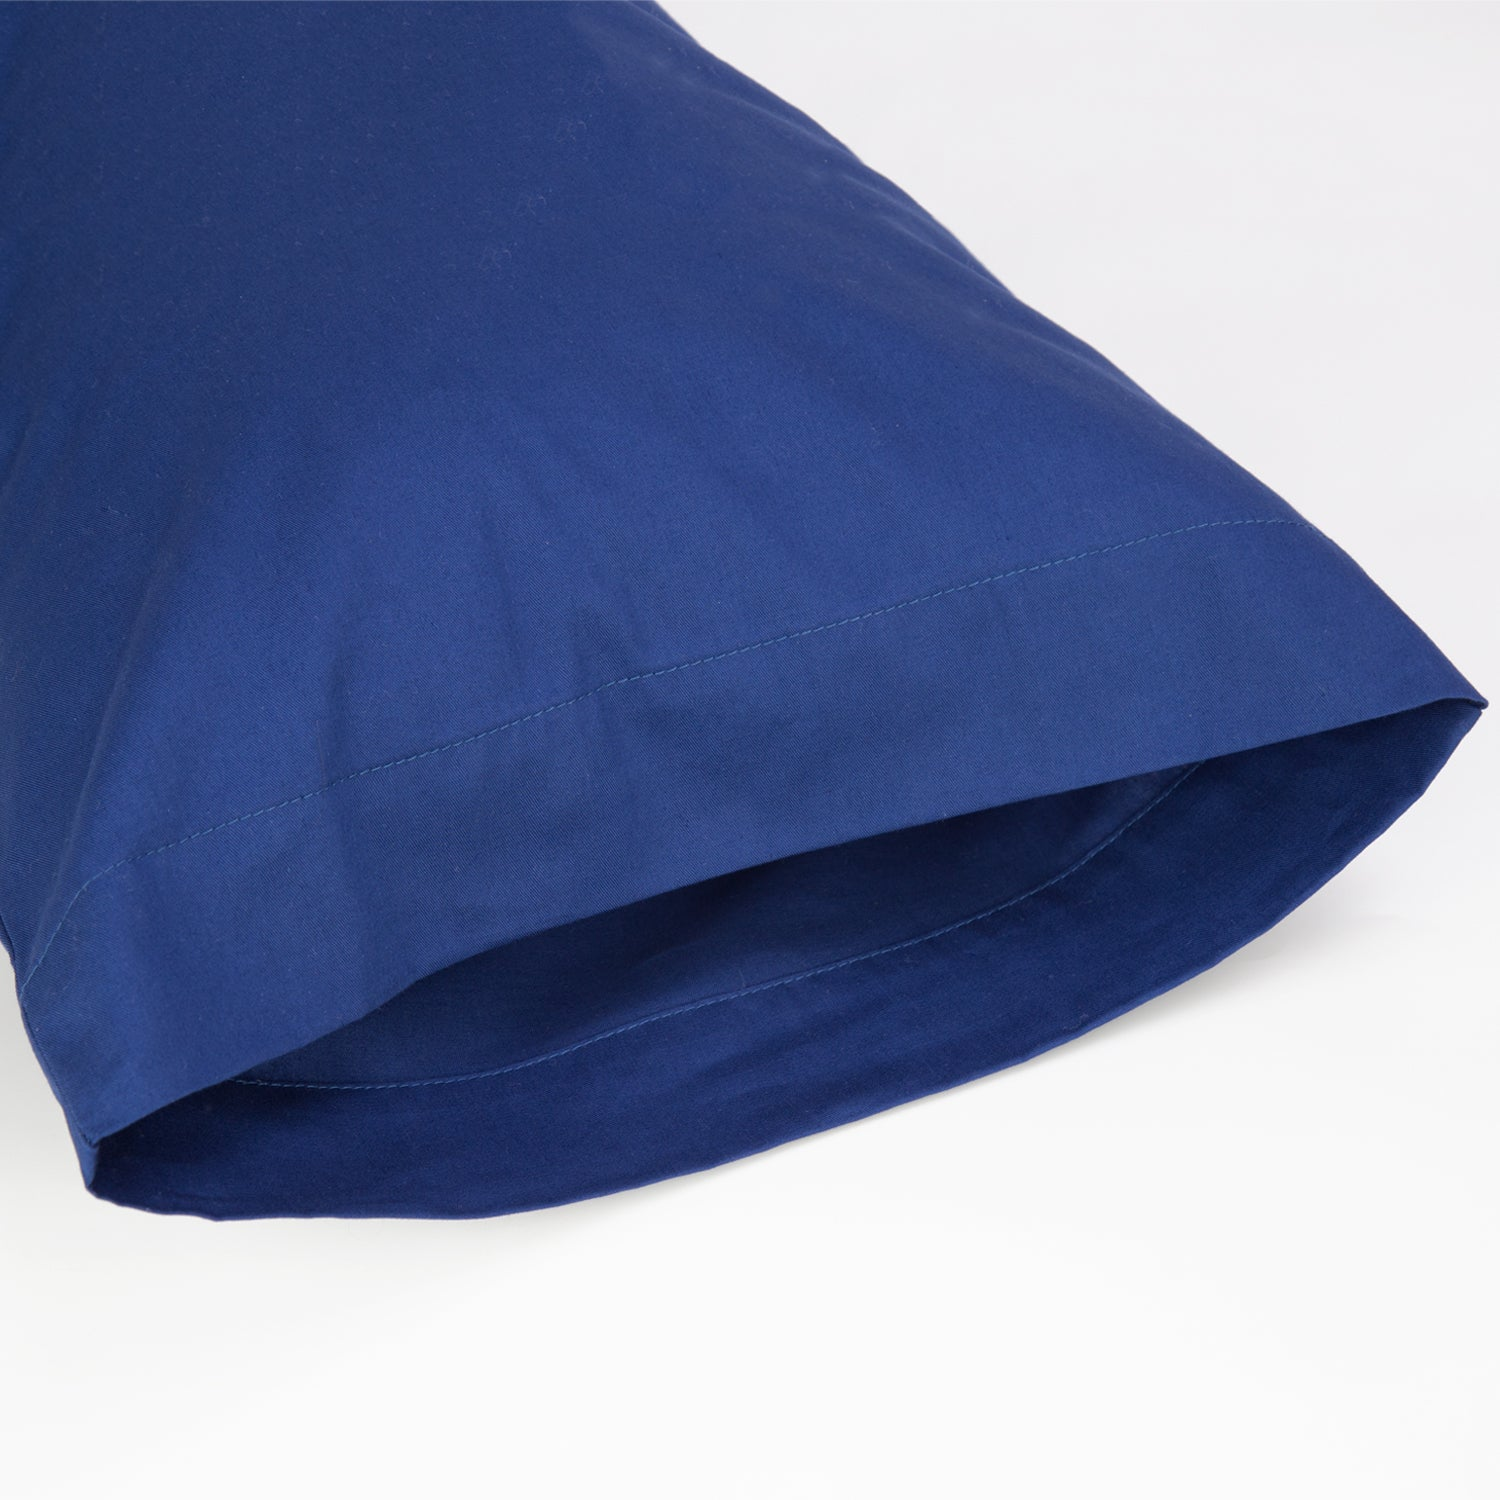 Ultra Soft Toddler Pillowcases 2 PK - Navy